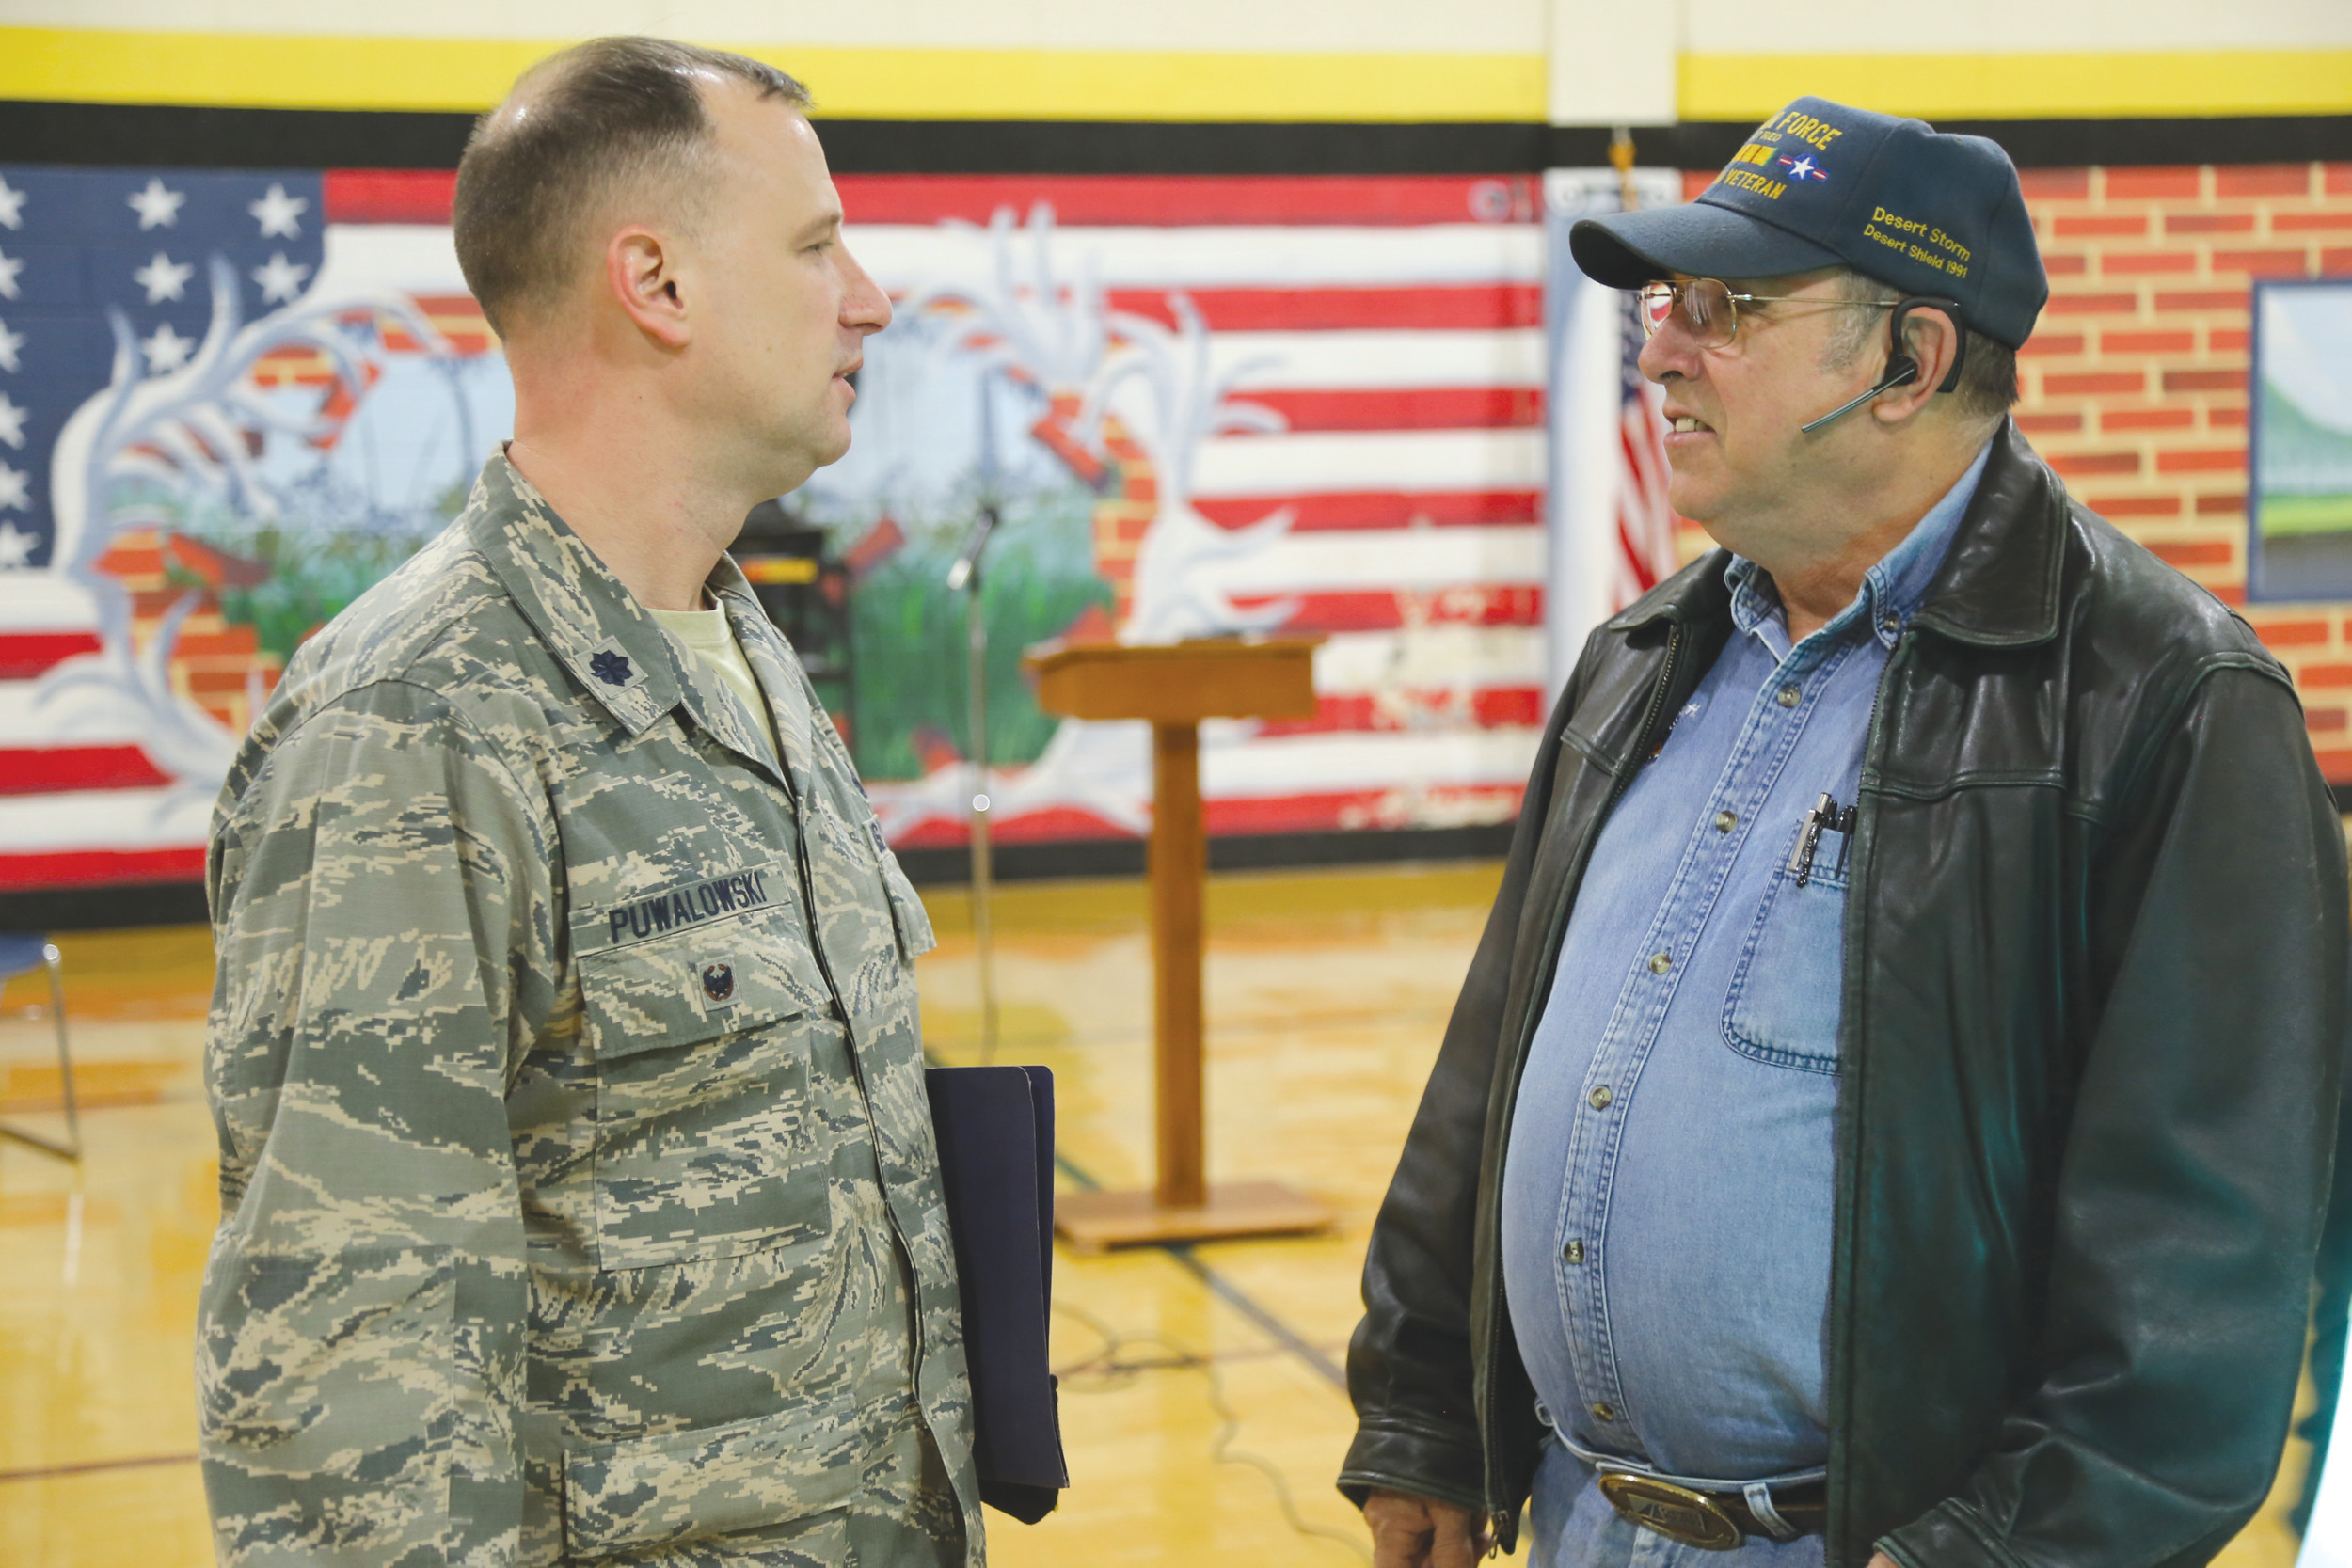 Shaw airman Lt. Col. Nathan Puwalowski, left, speaks with Air Force veteran and Sumter resident Chuck Conley on Thursday at High Hills Elementary. Puwalowski was the keynote speaker for the school's Veterans Day program. Both men have children that attend the school.